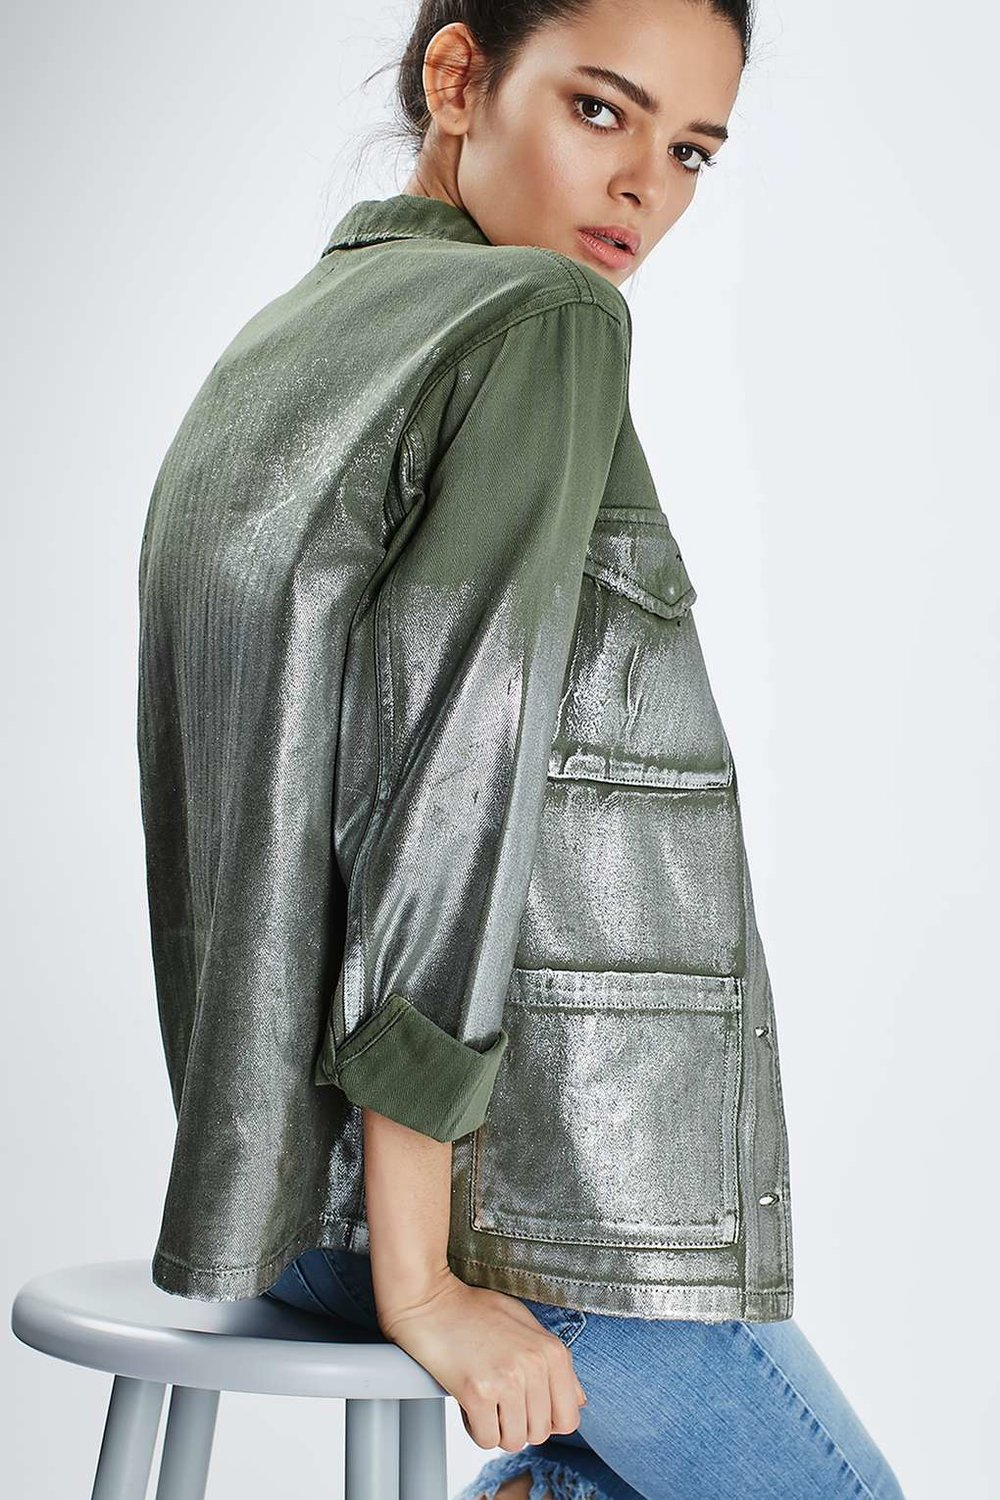 topshop-Foil-Detailed-Lightweight-Shacket-back-outstyled.jpg